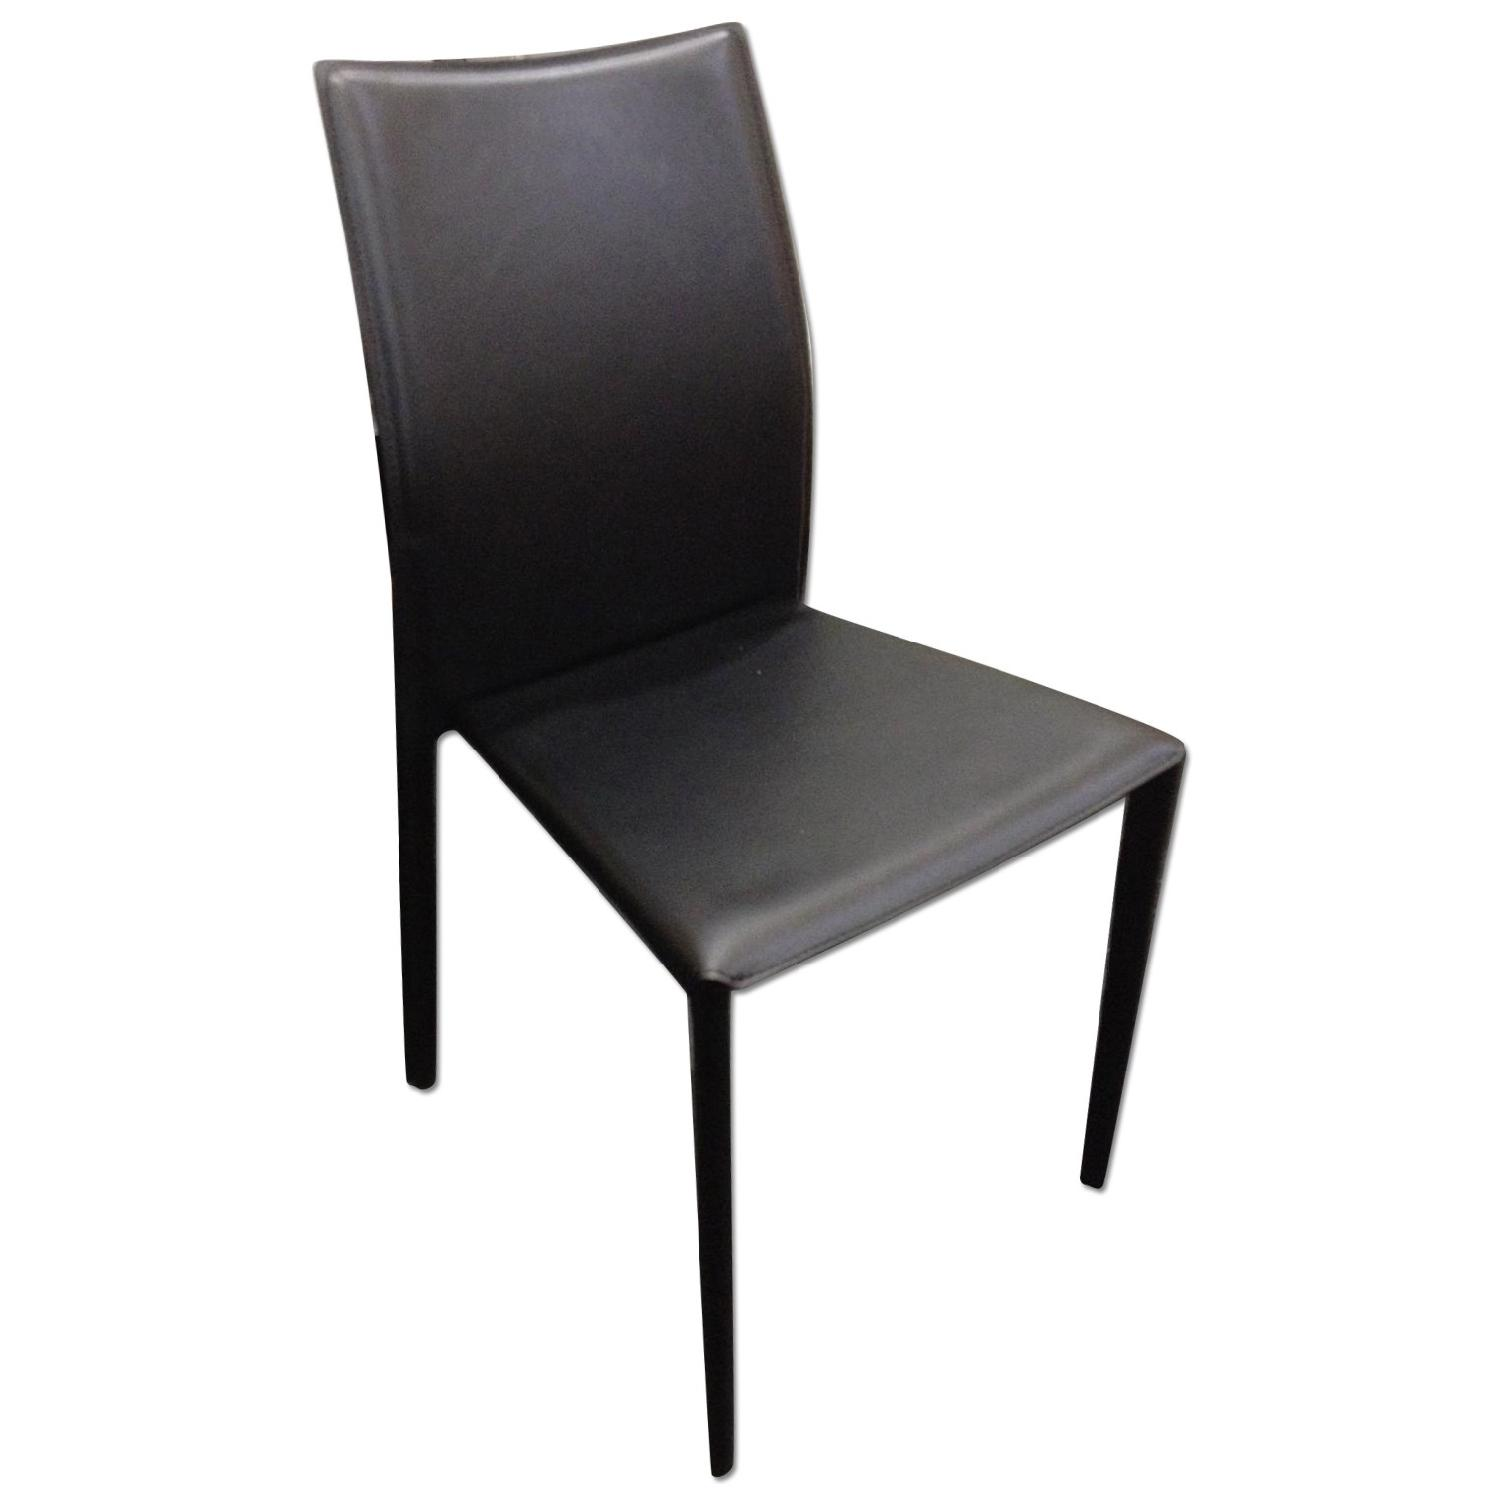 Modern Stackable Dining Chair in Metal Frame & Black - AptDeco